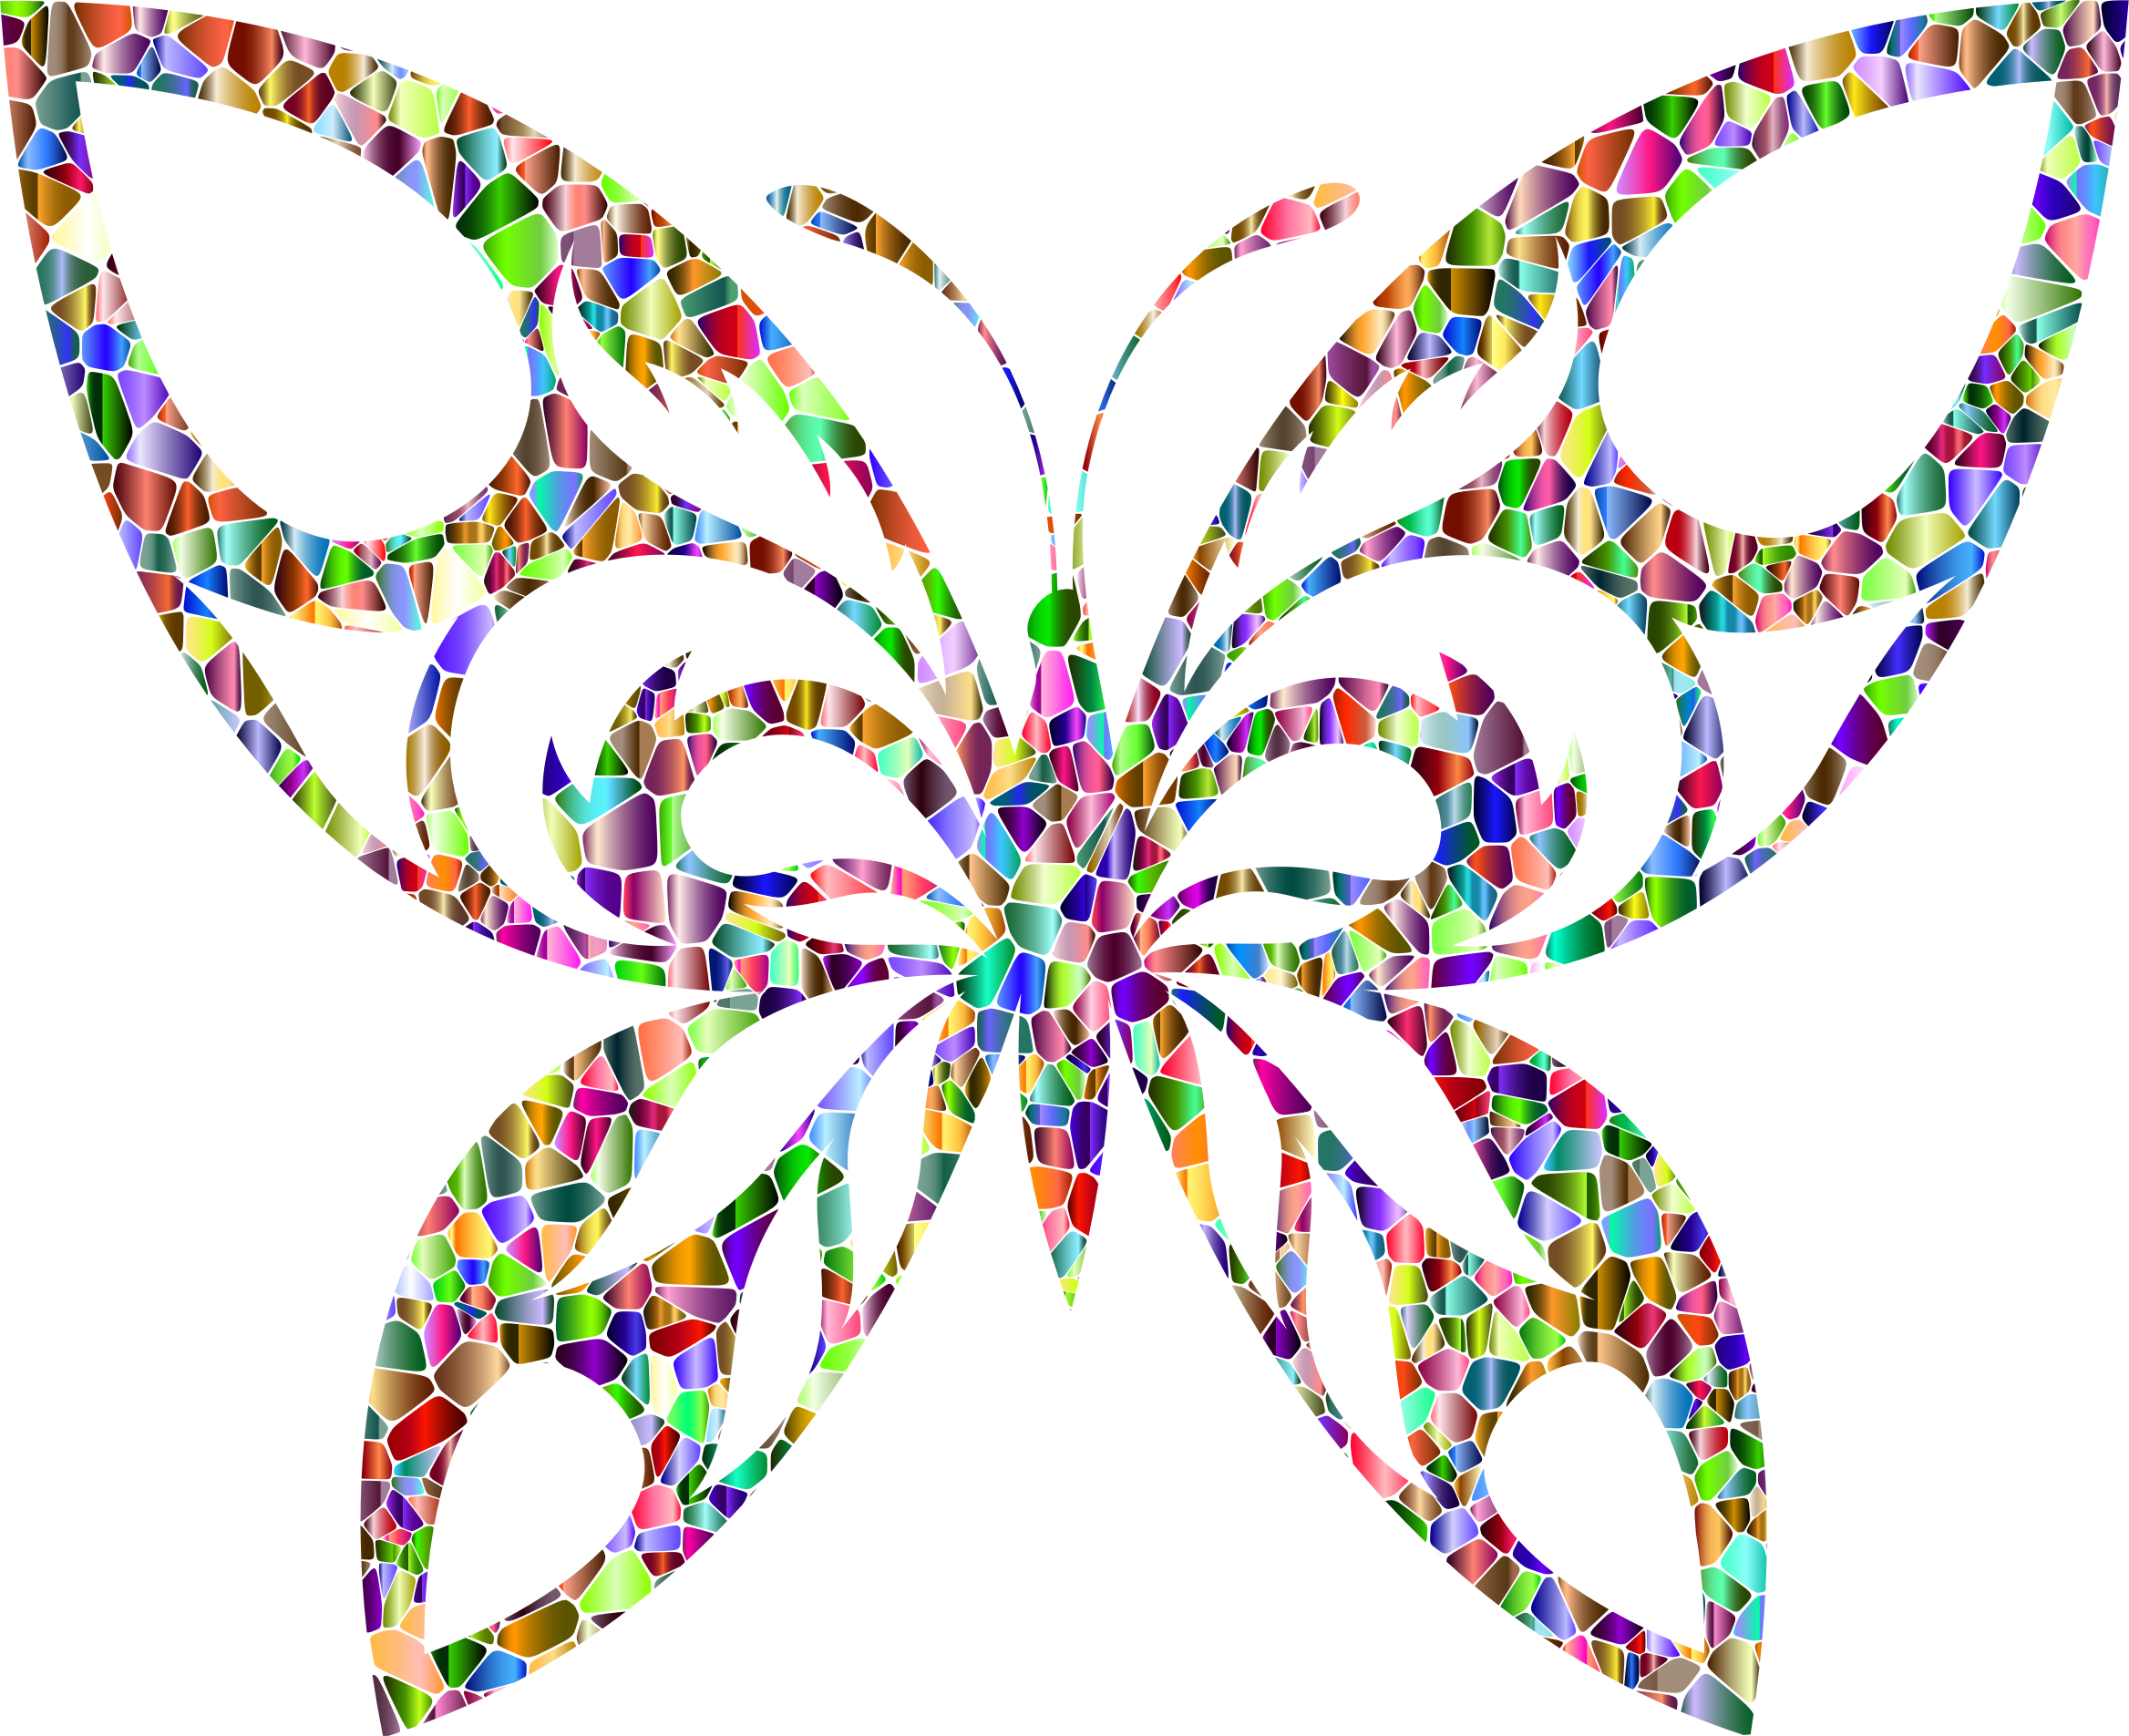 Vivid Polychromatic Tiled Tribal Butterfly Silhouette by GDJ